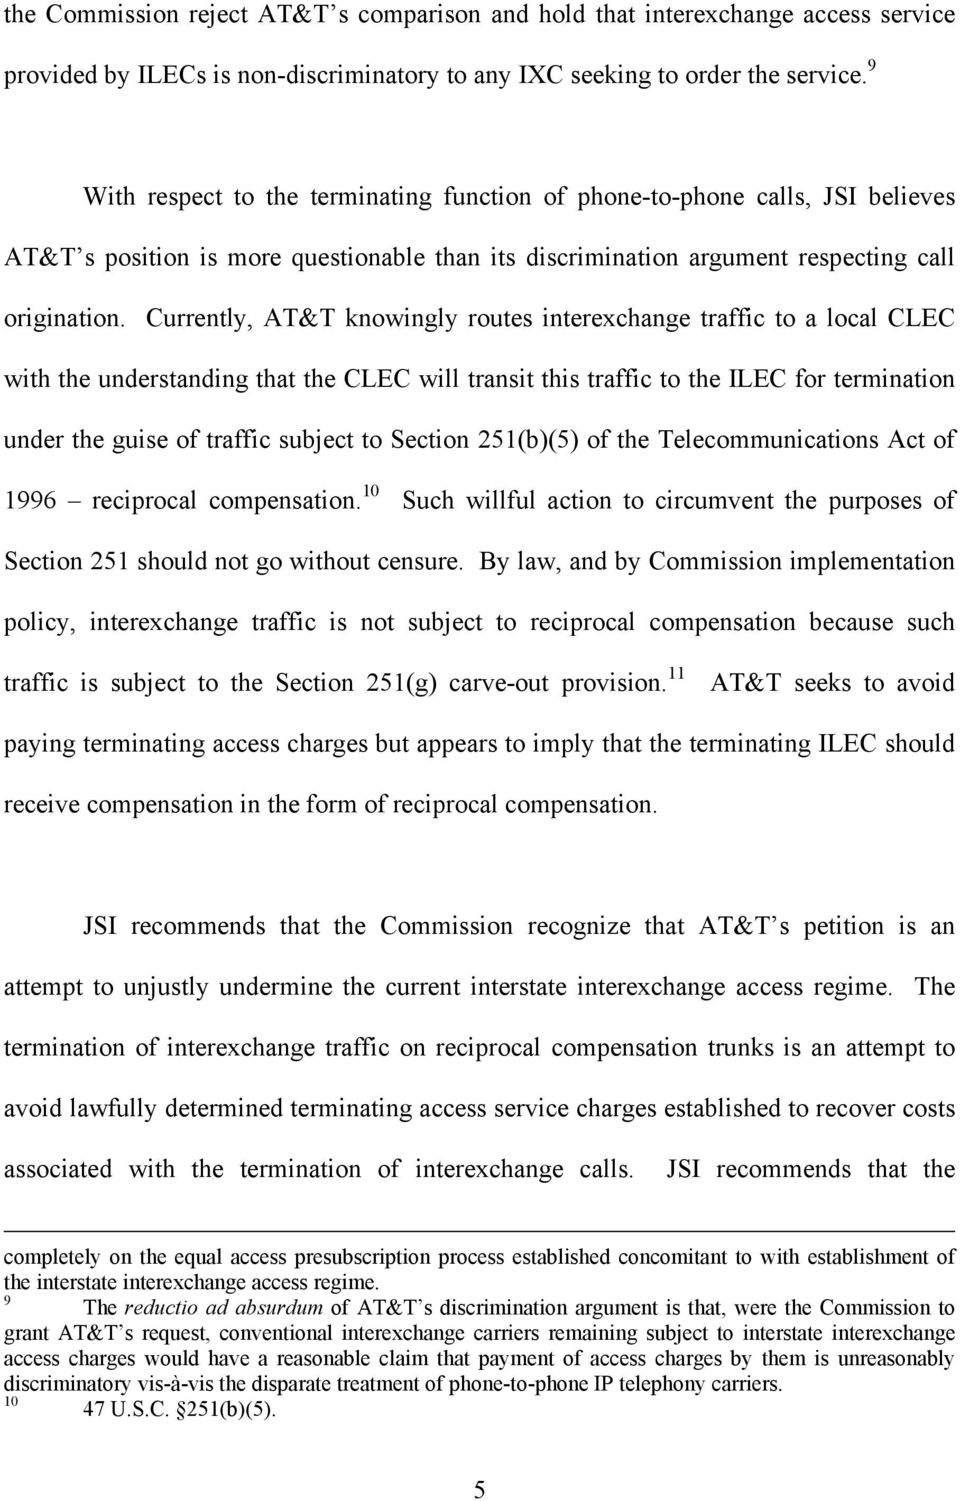 Currently, AT&T knowingly routes interexchange traffic to a local CLEC with the understanding that the CLEC will transit this traffic to the ILEC for termination under the guise of traffic subject to